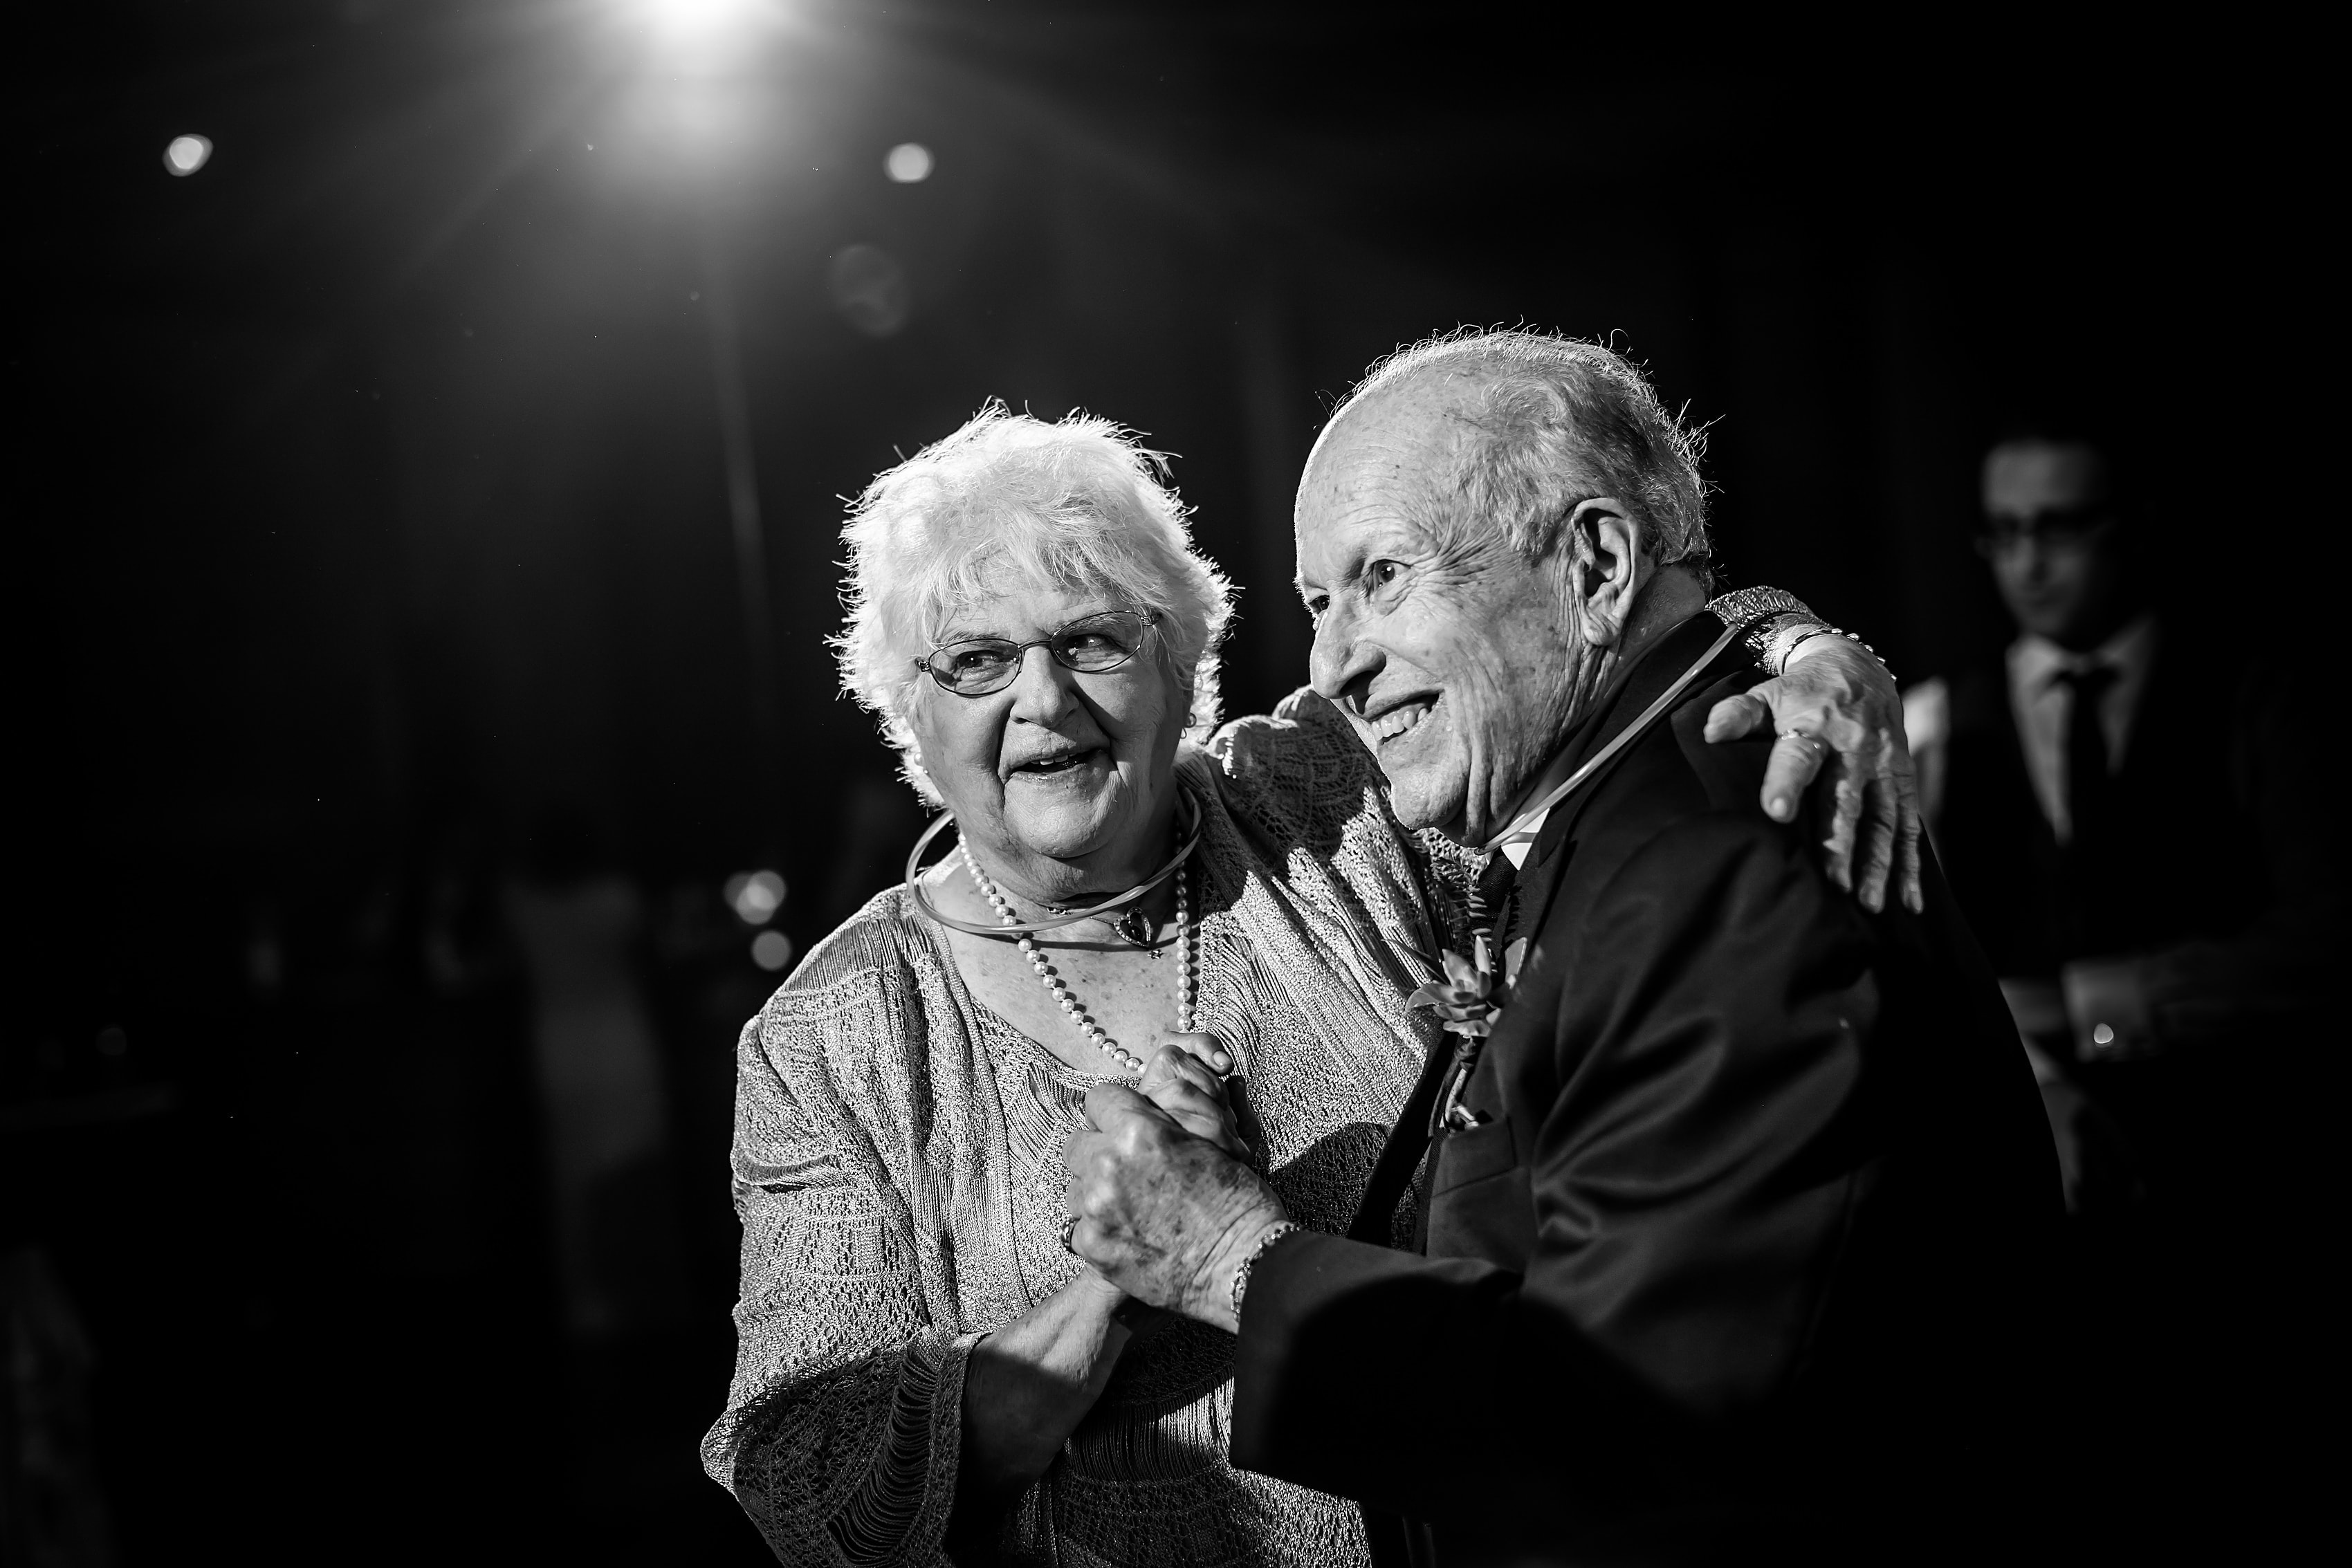 grandparents dance during wedding reception at Bridgeport Art Center Sculpture Garden in Chicago